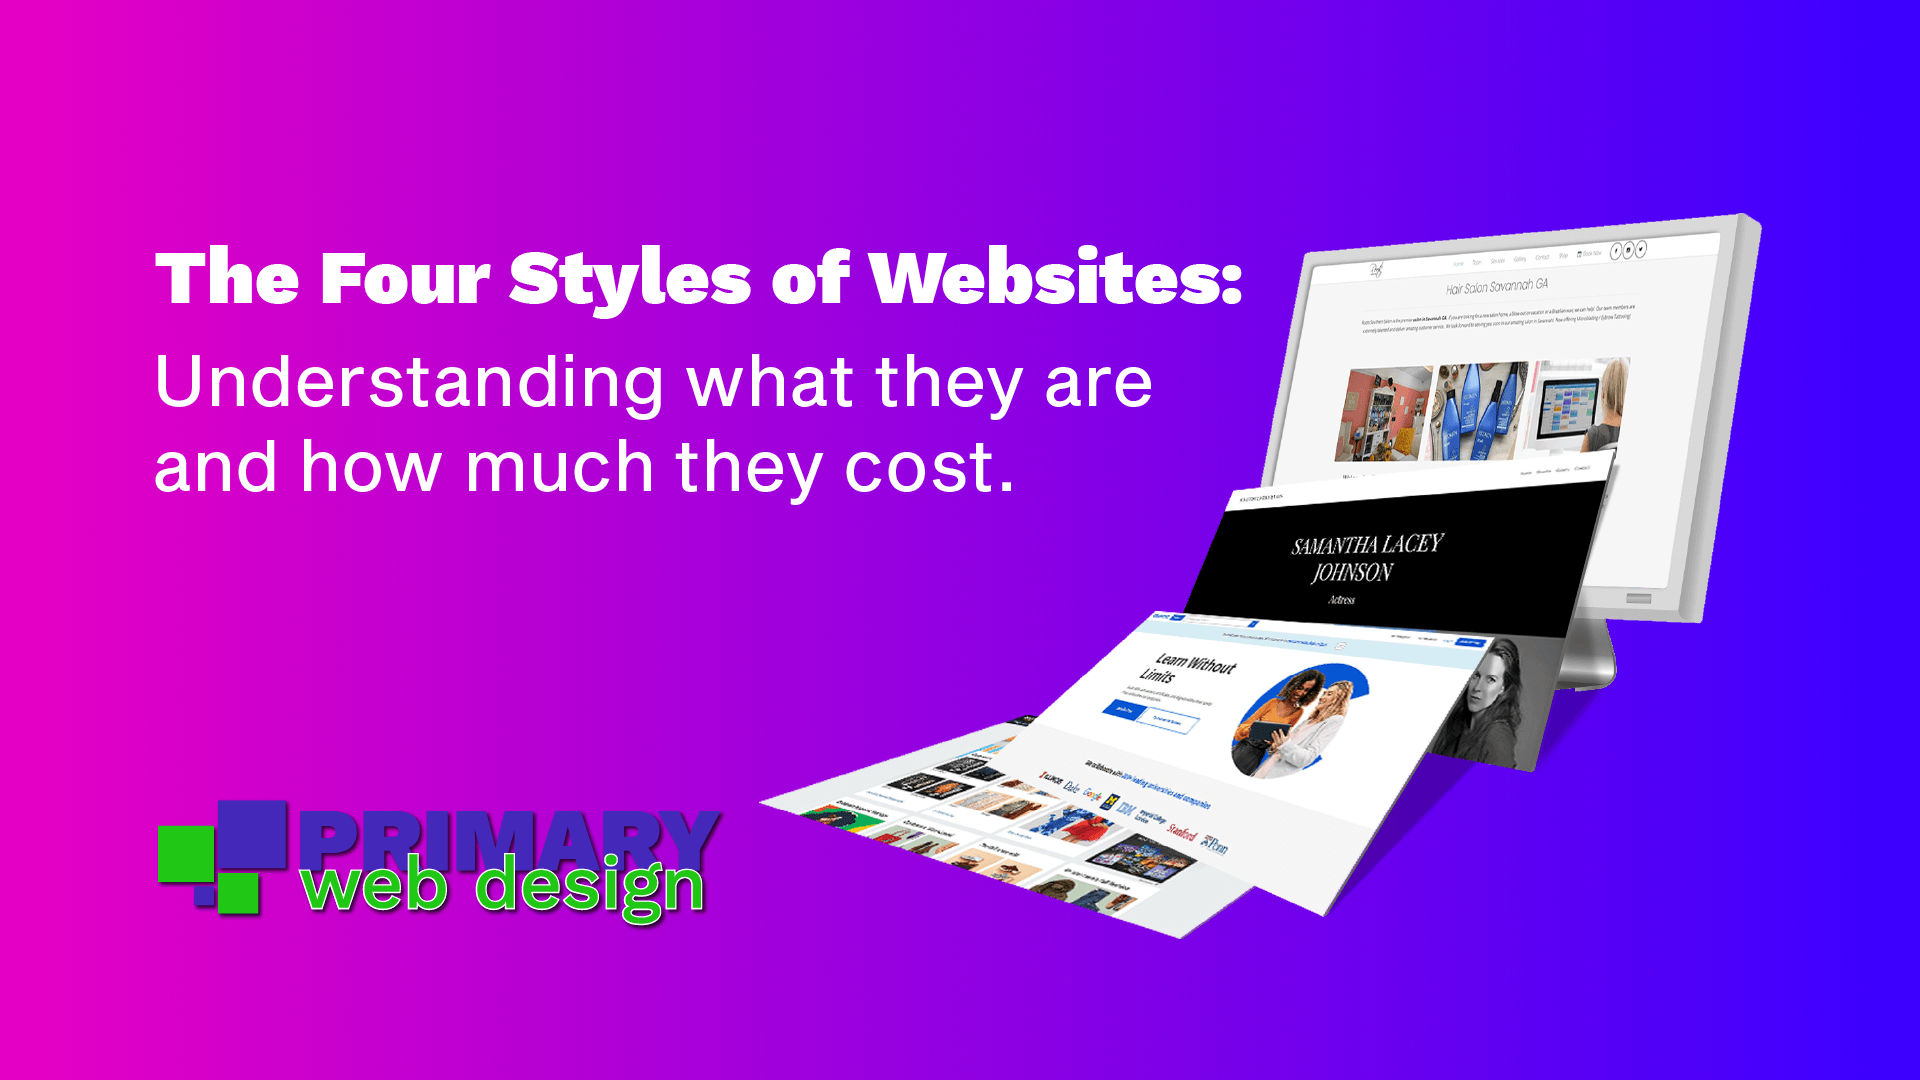 The Four Styles of Websites Feature Image